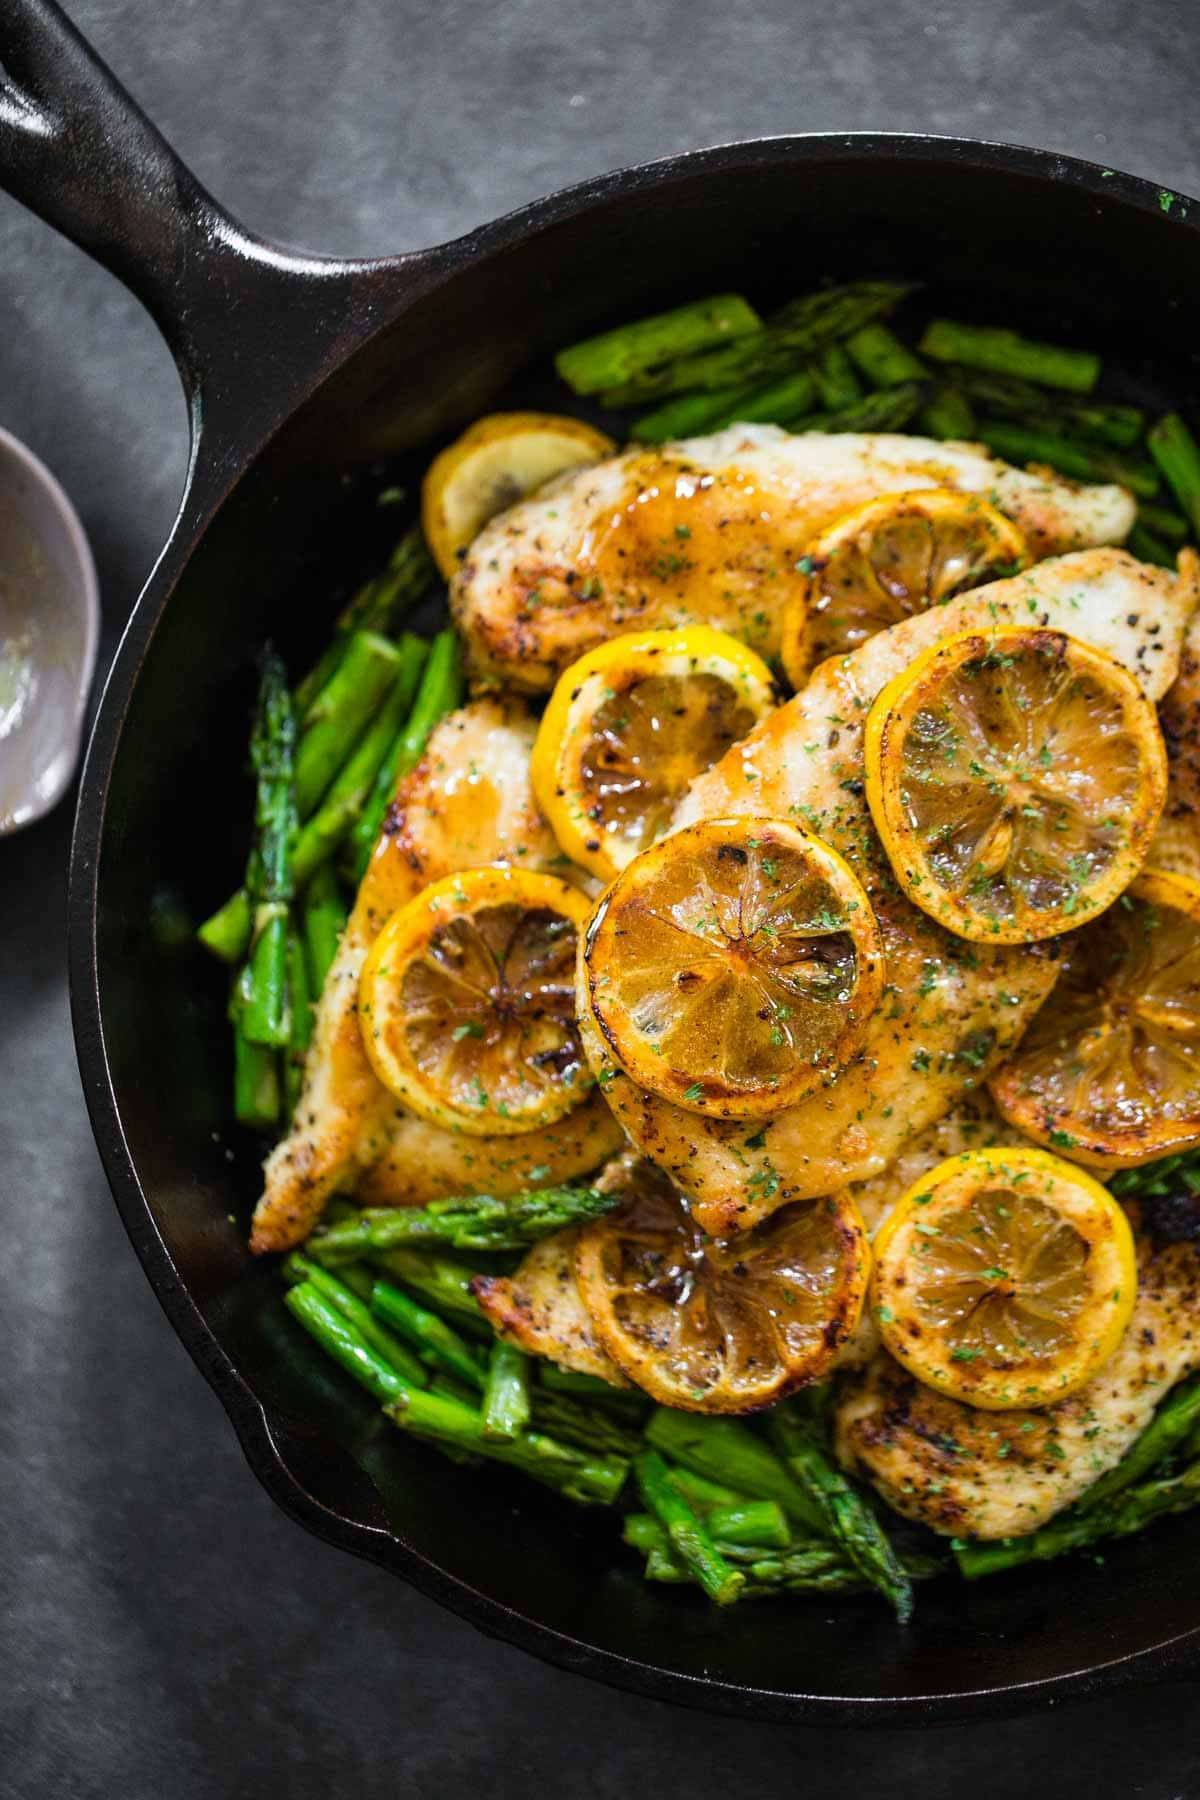 5 Ingredient Lemon Chicken With Asparagus A Bright Fresh Healthy Recipe That S Ready